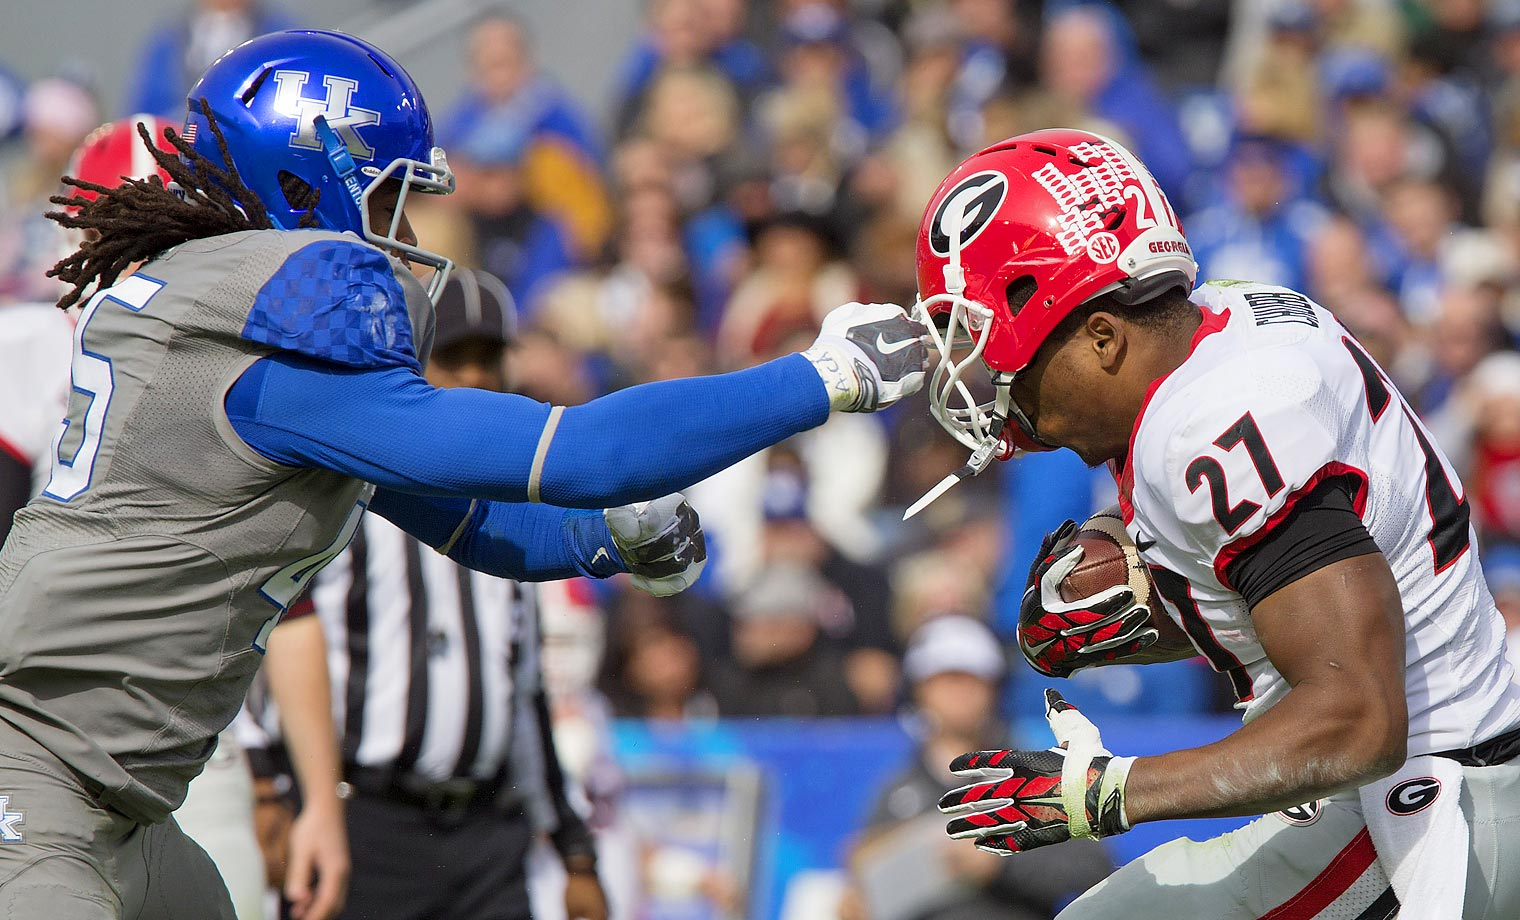 Kentucky linebacker Josh Forrest grabs the helmet of Georgia running back Nick Chubb. The Georgia Bulldogs beat the Kentucky Wildcats 63-31.